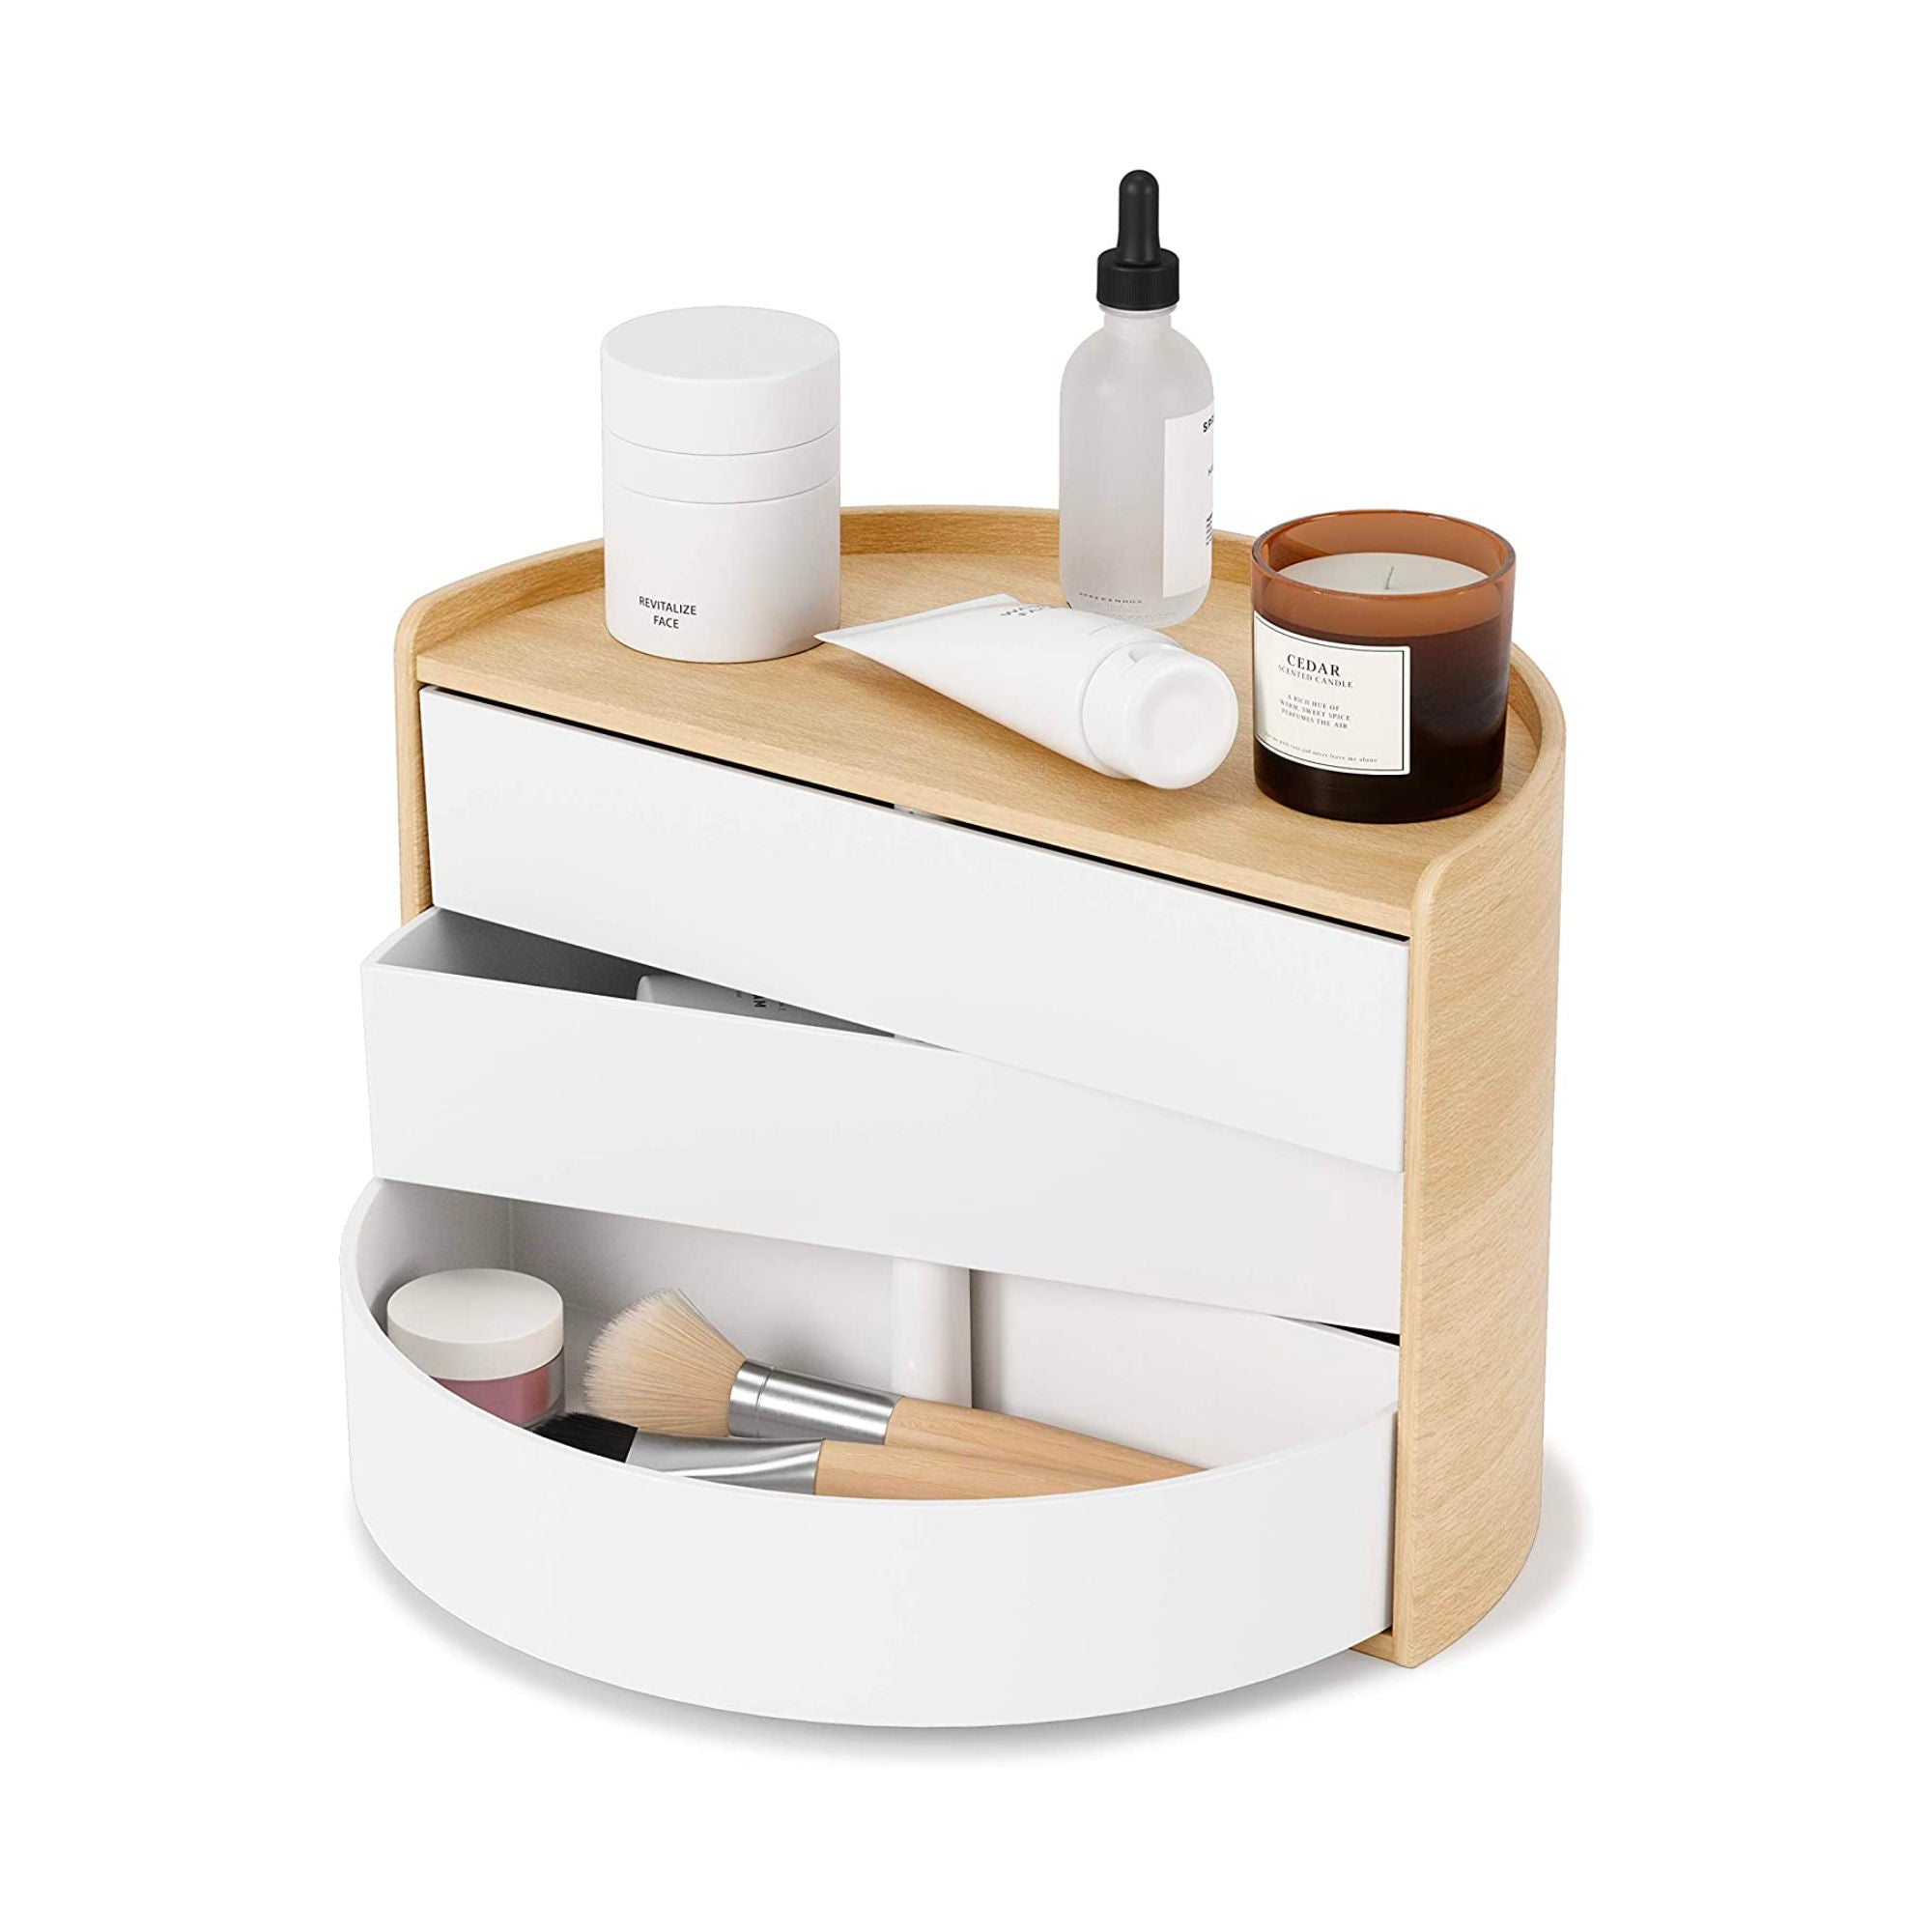 Umbra Moona Storage Box , White/Natural